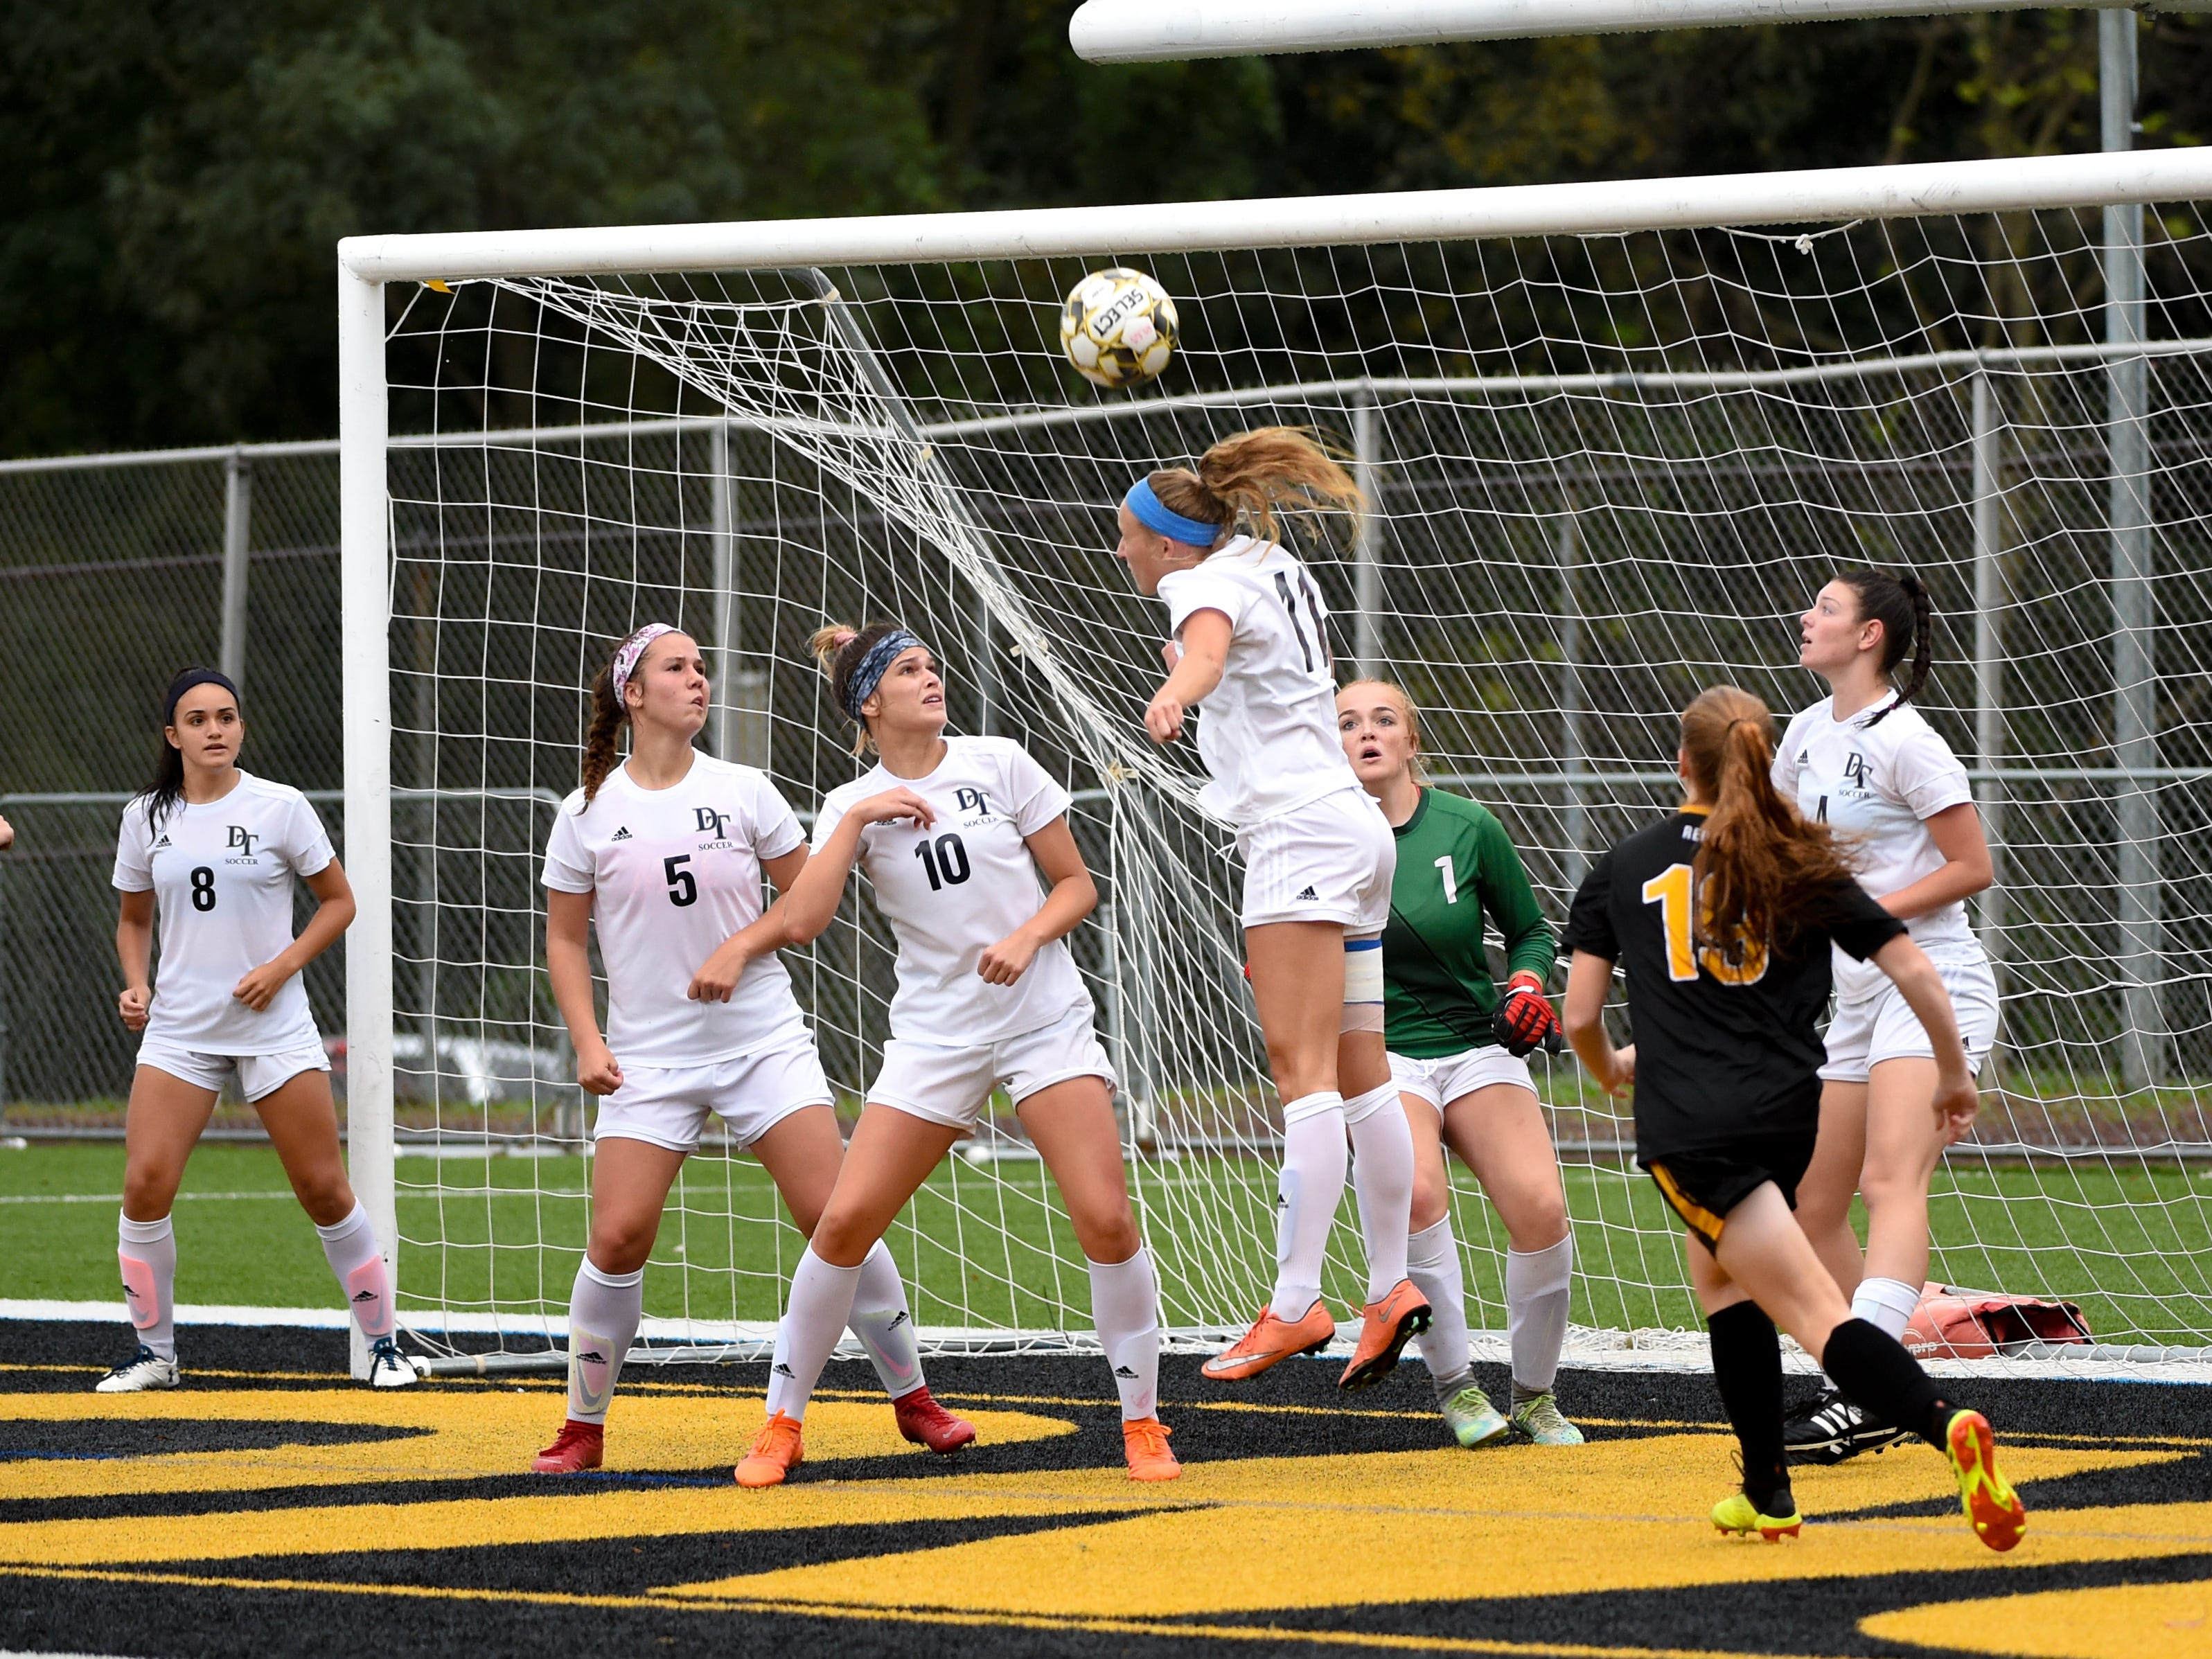 Dallastown heads the ball out of their box, October 11, 2018. The Lady Lions beat the Wildcats 4-0.